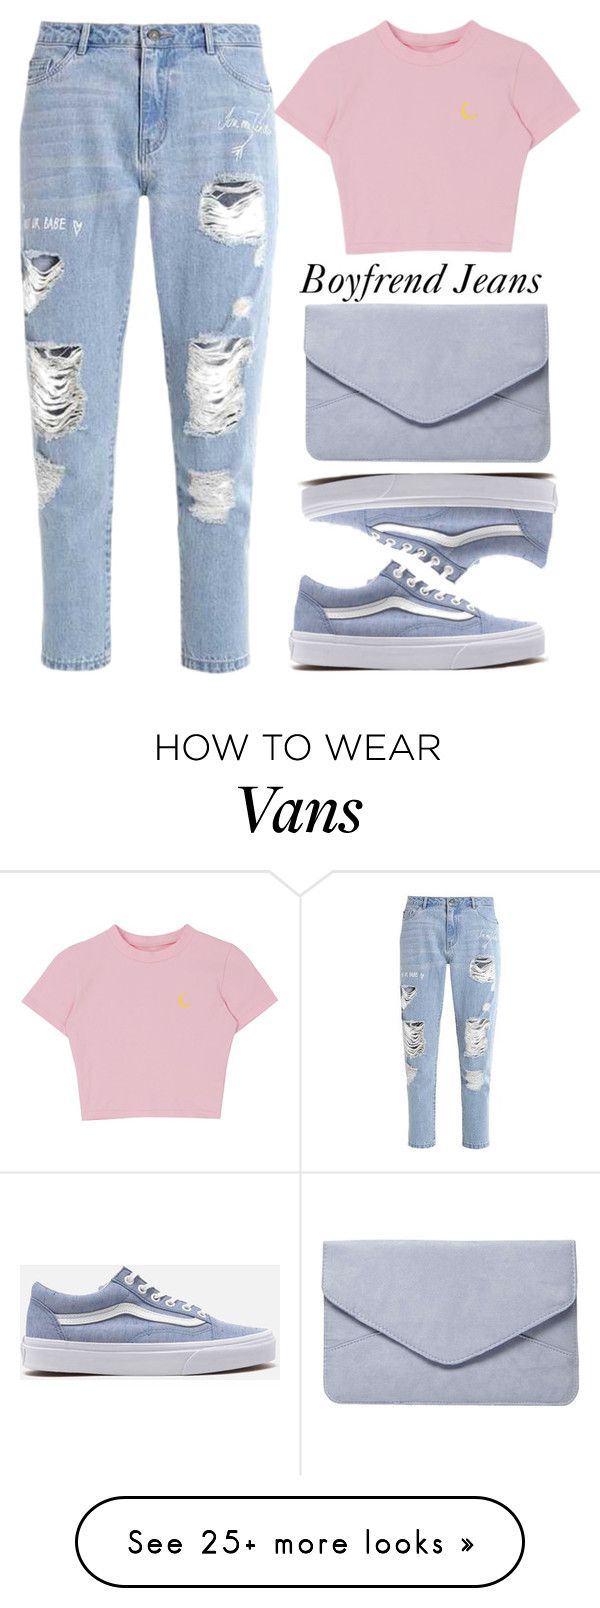 """Borrowed from the Boys: Boyfriend Jeans"" by xhesikakuca on Polyvore featuring Vans and Dorothy Perkins"